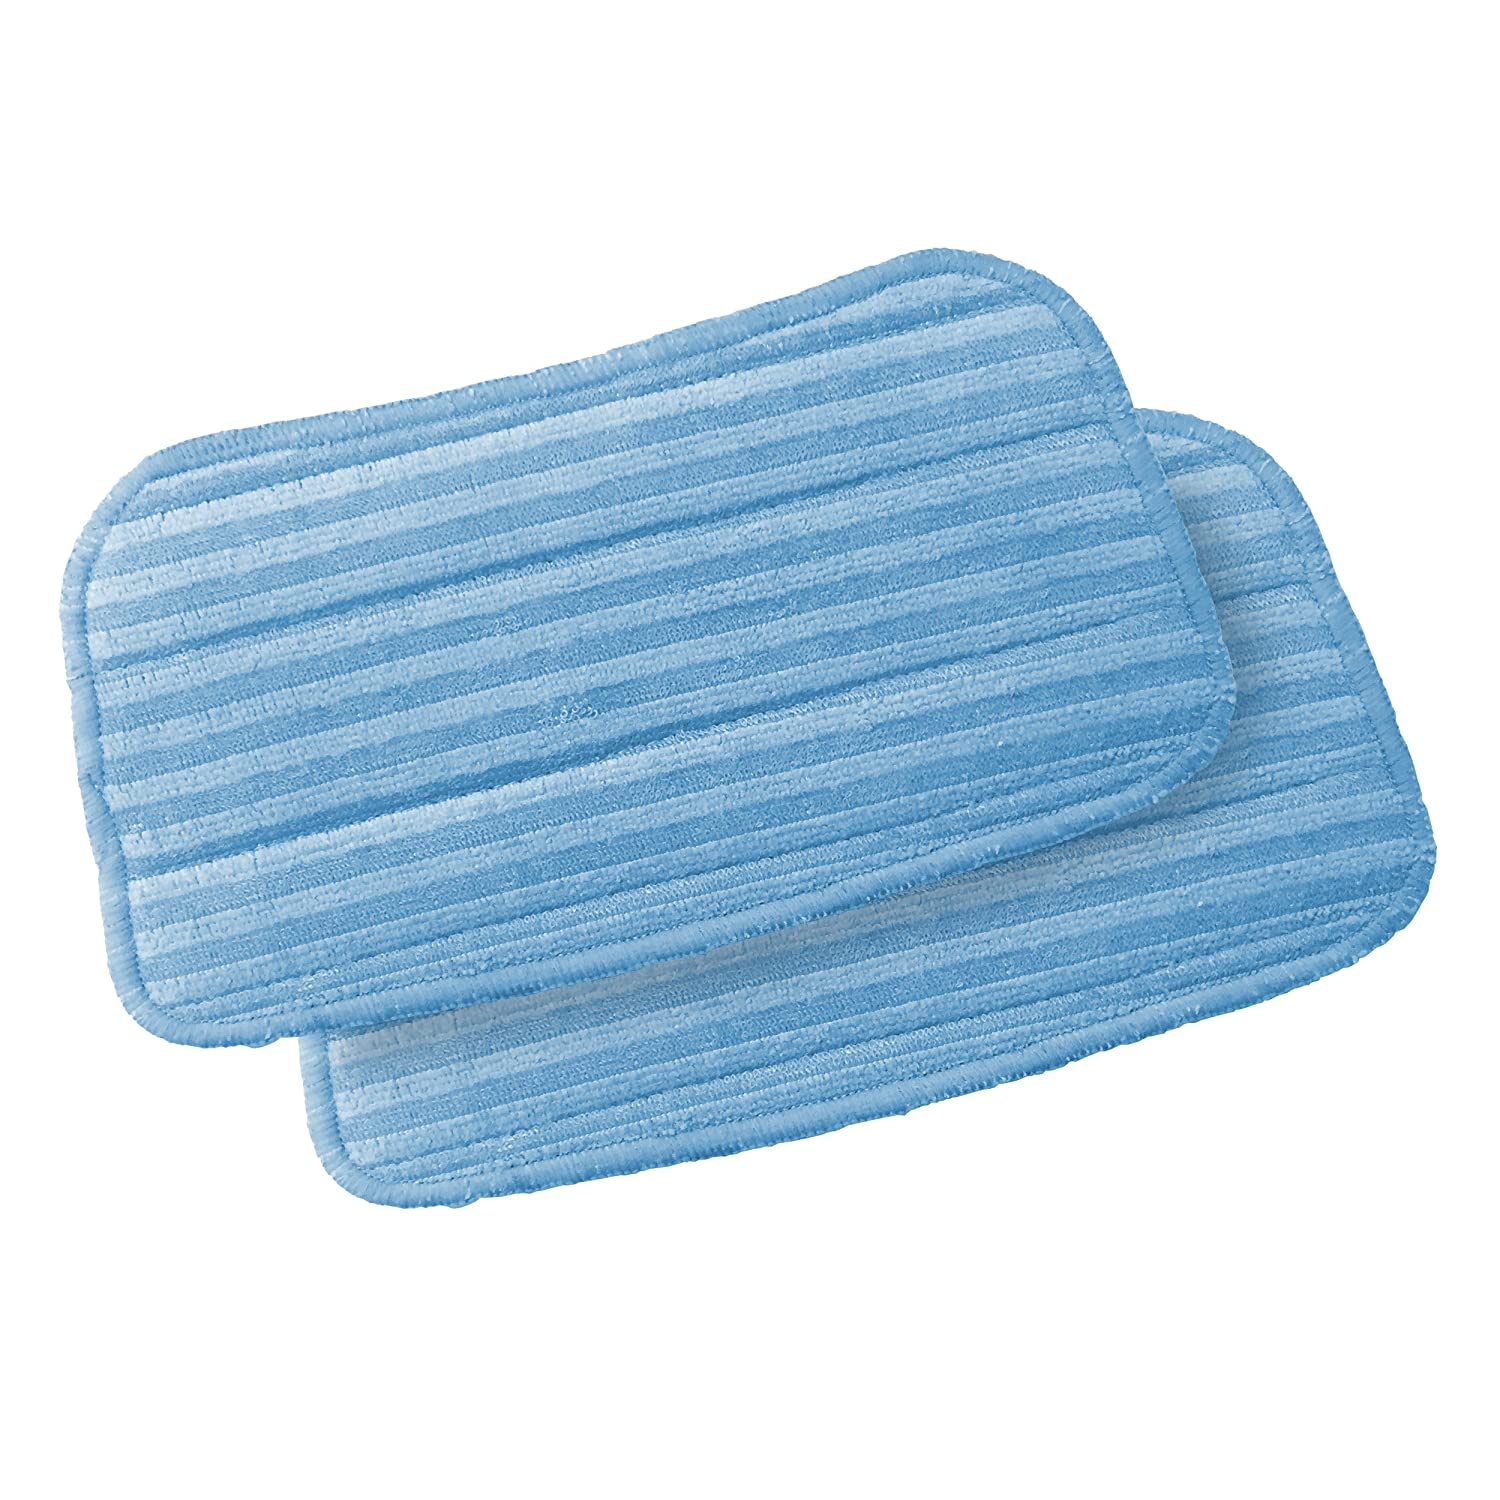 Steamfast A295-100 Replacement Microfiber Mop Pad (2 Pack)